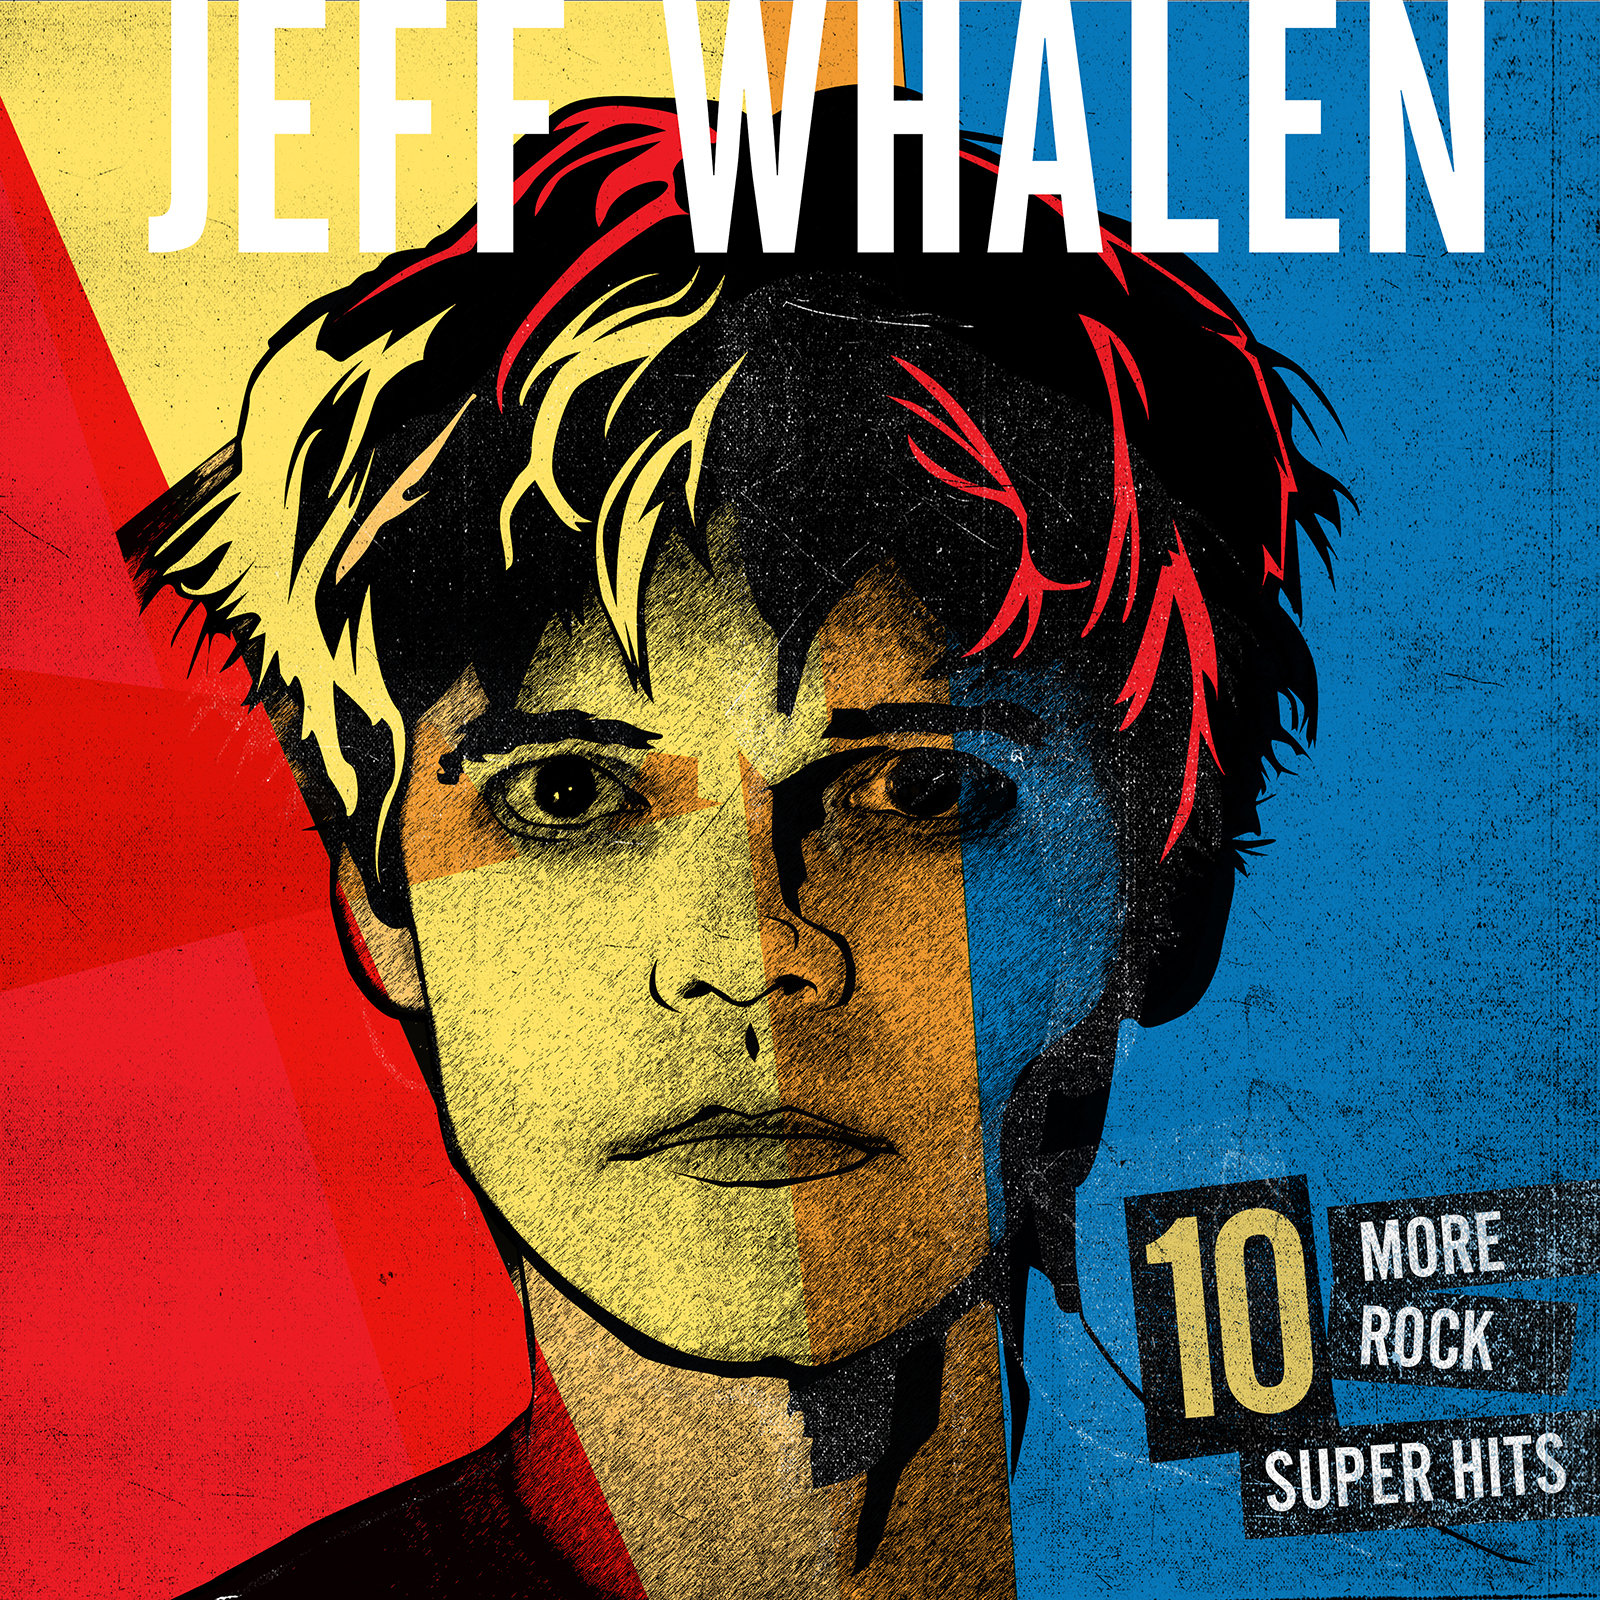 Jeff Whalen Ten More Rock Super Hits.jpg